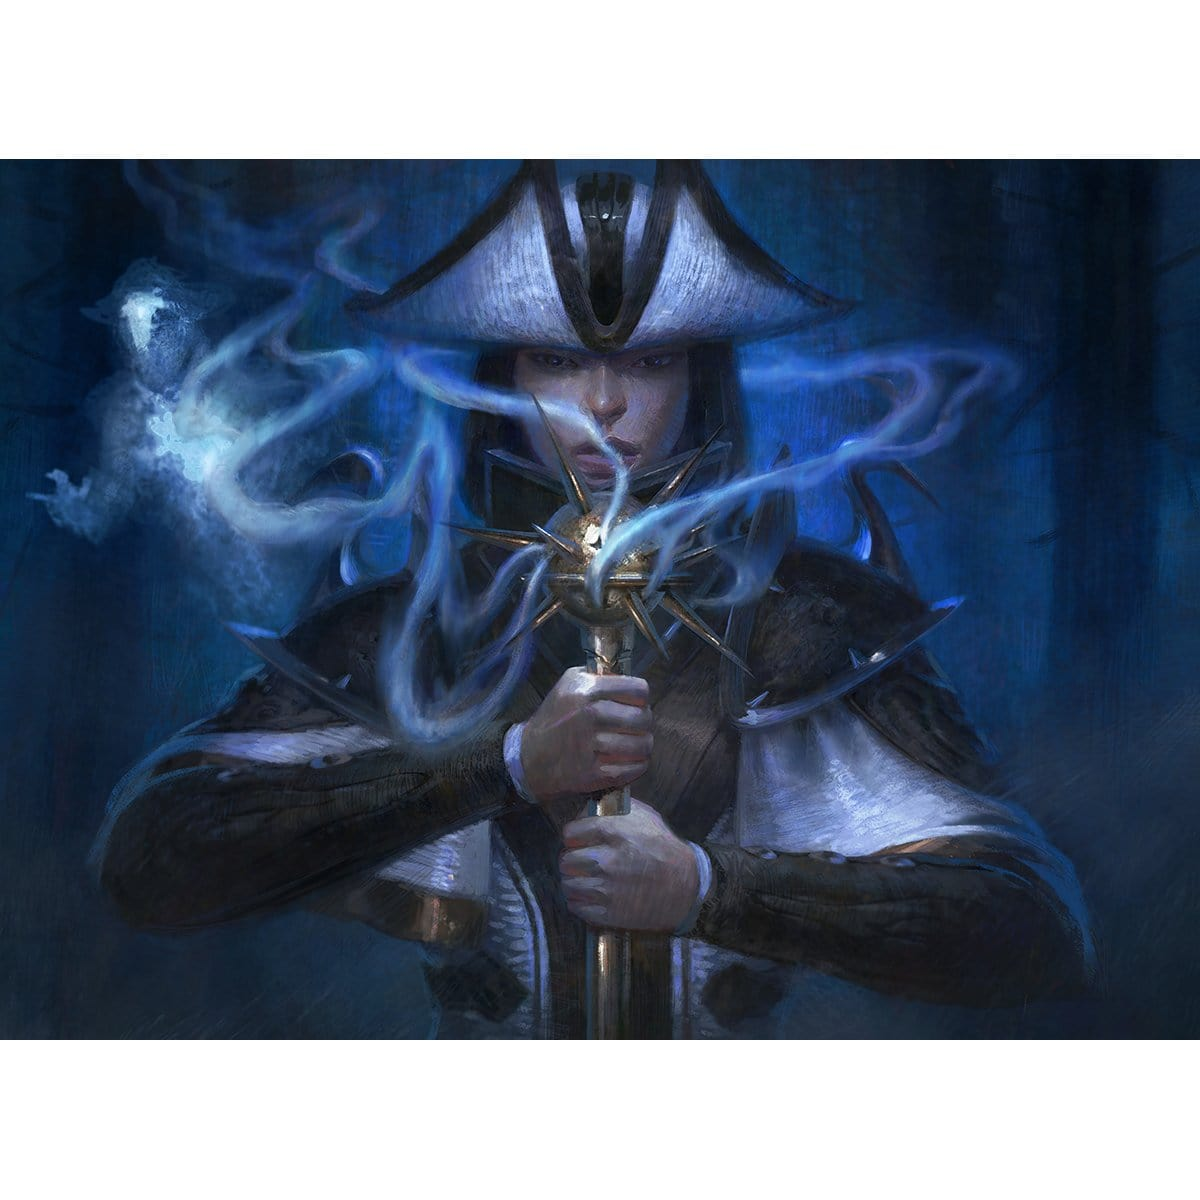 Thalia's Geistcaller Print - Print - Original Magic Art - Accessories for Magic the Gathering and other card games